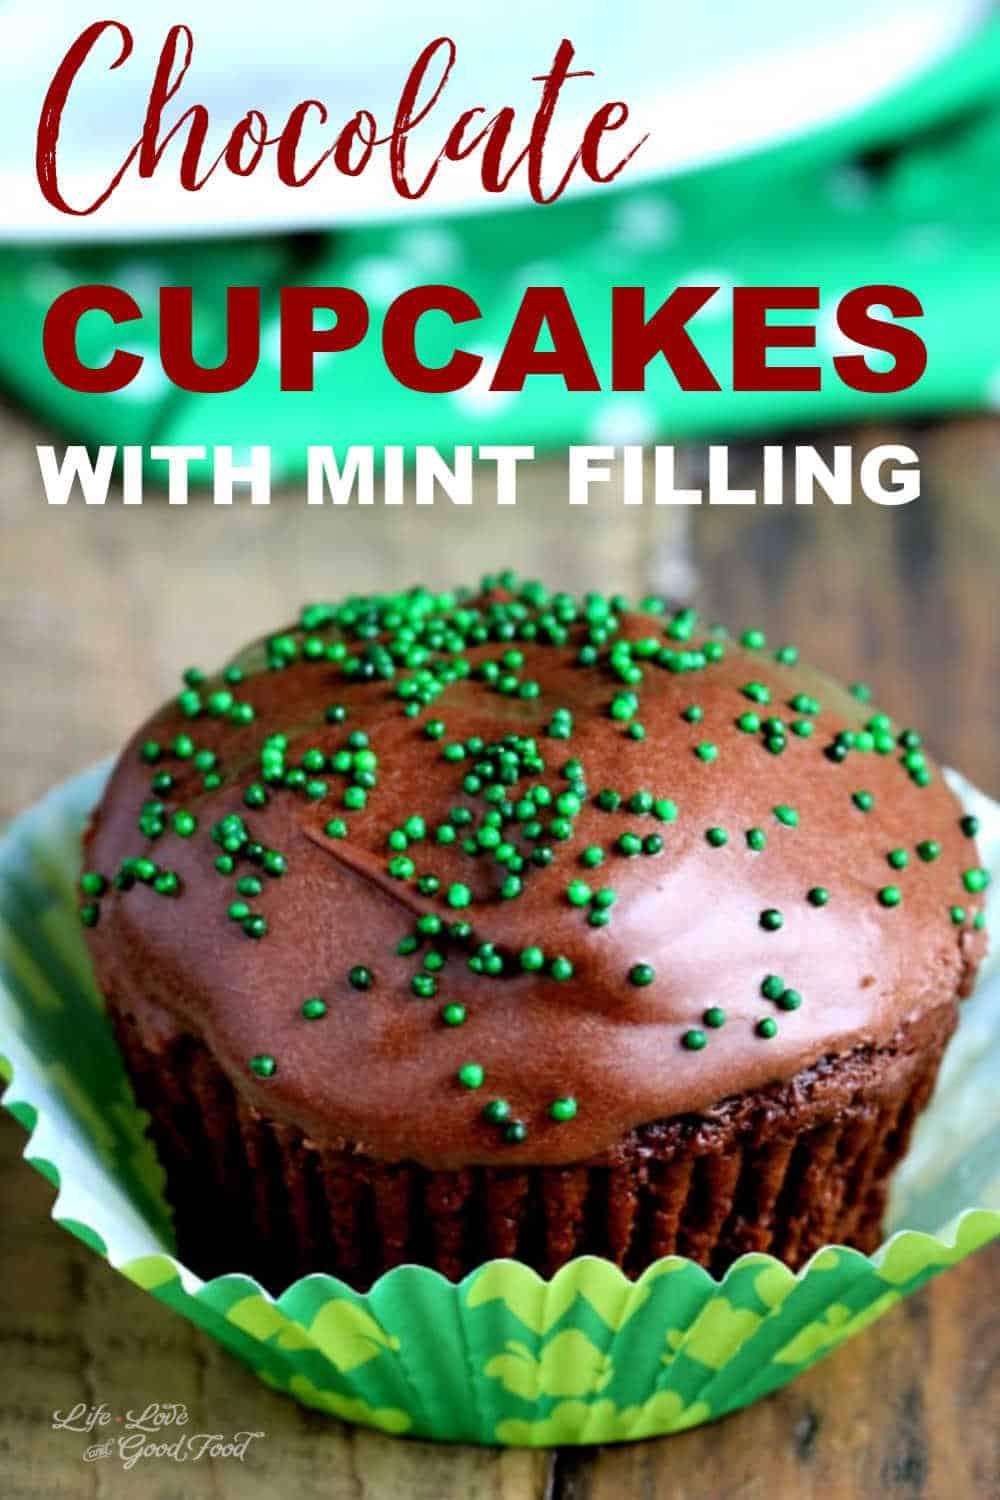 Perfect for St. Patrick's Day parties! Moist dark chocolate cupcakes with rich fudge frosting have a delicious surprise inside — a cream filled center flavored with Crème De Menthe! See my easy recipe and clever kitchen hack for how to make Chocolate Cupcakes with Mint Filling made with marshmallow cream.